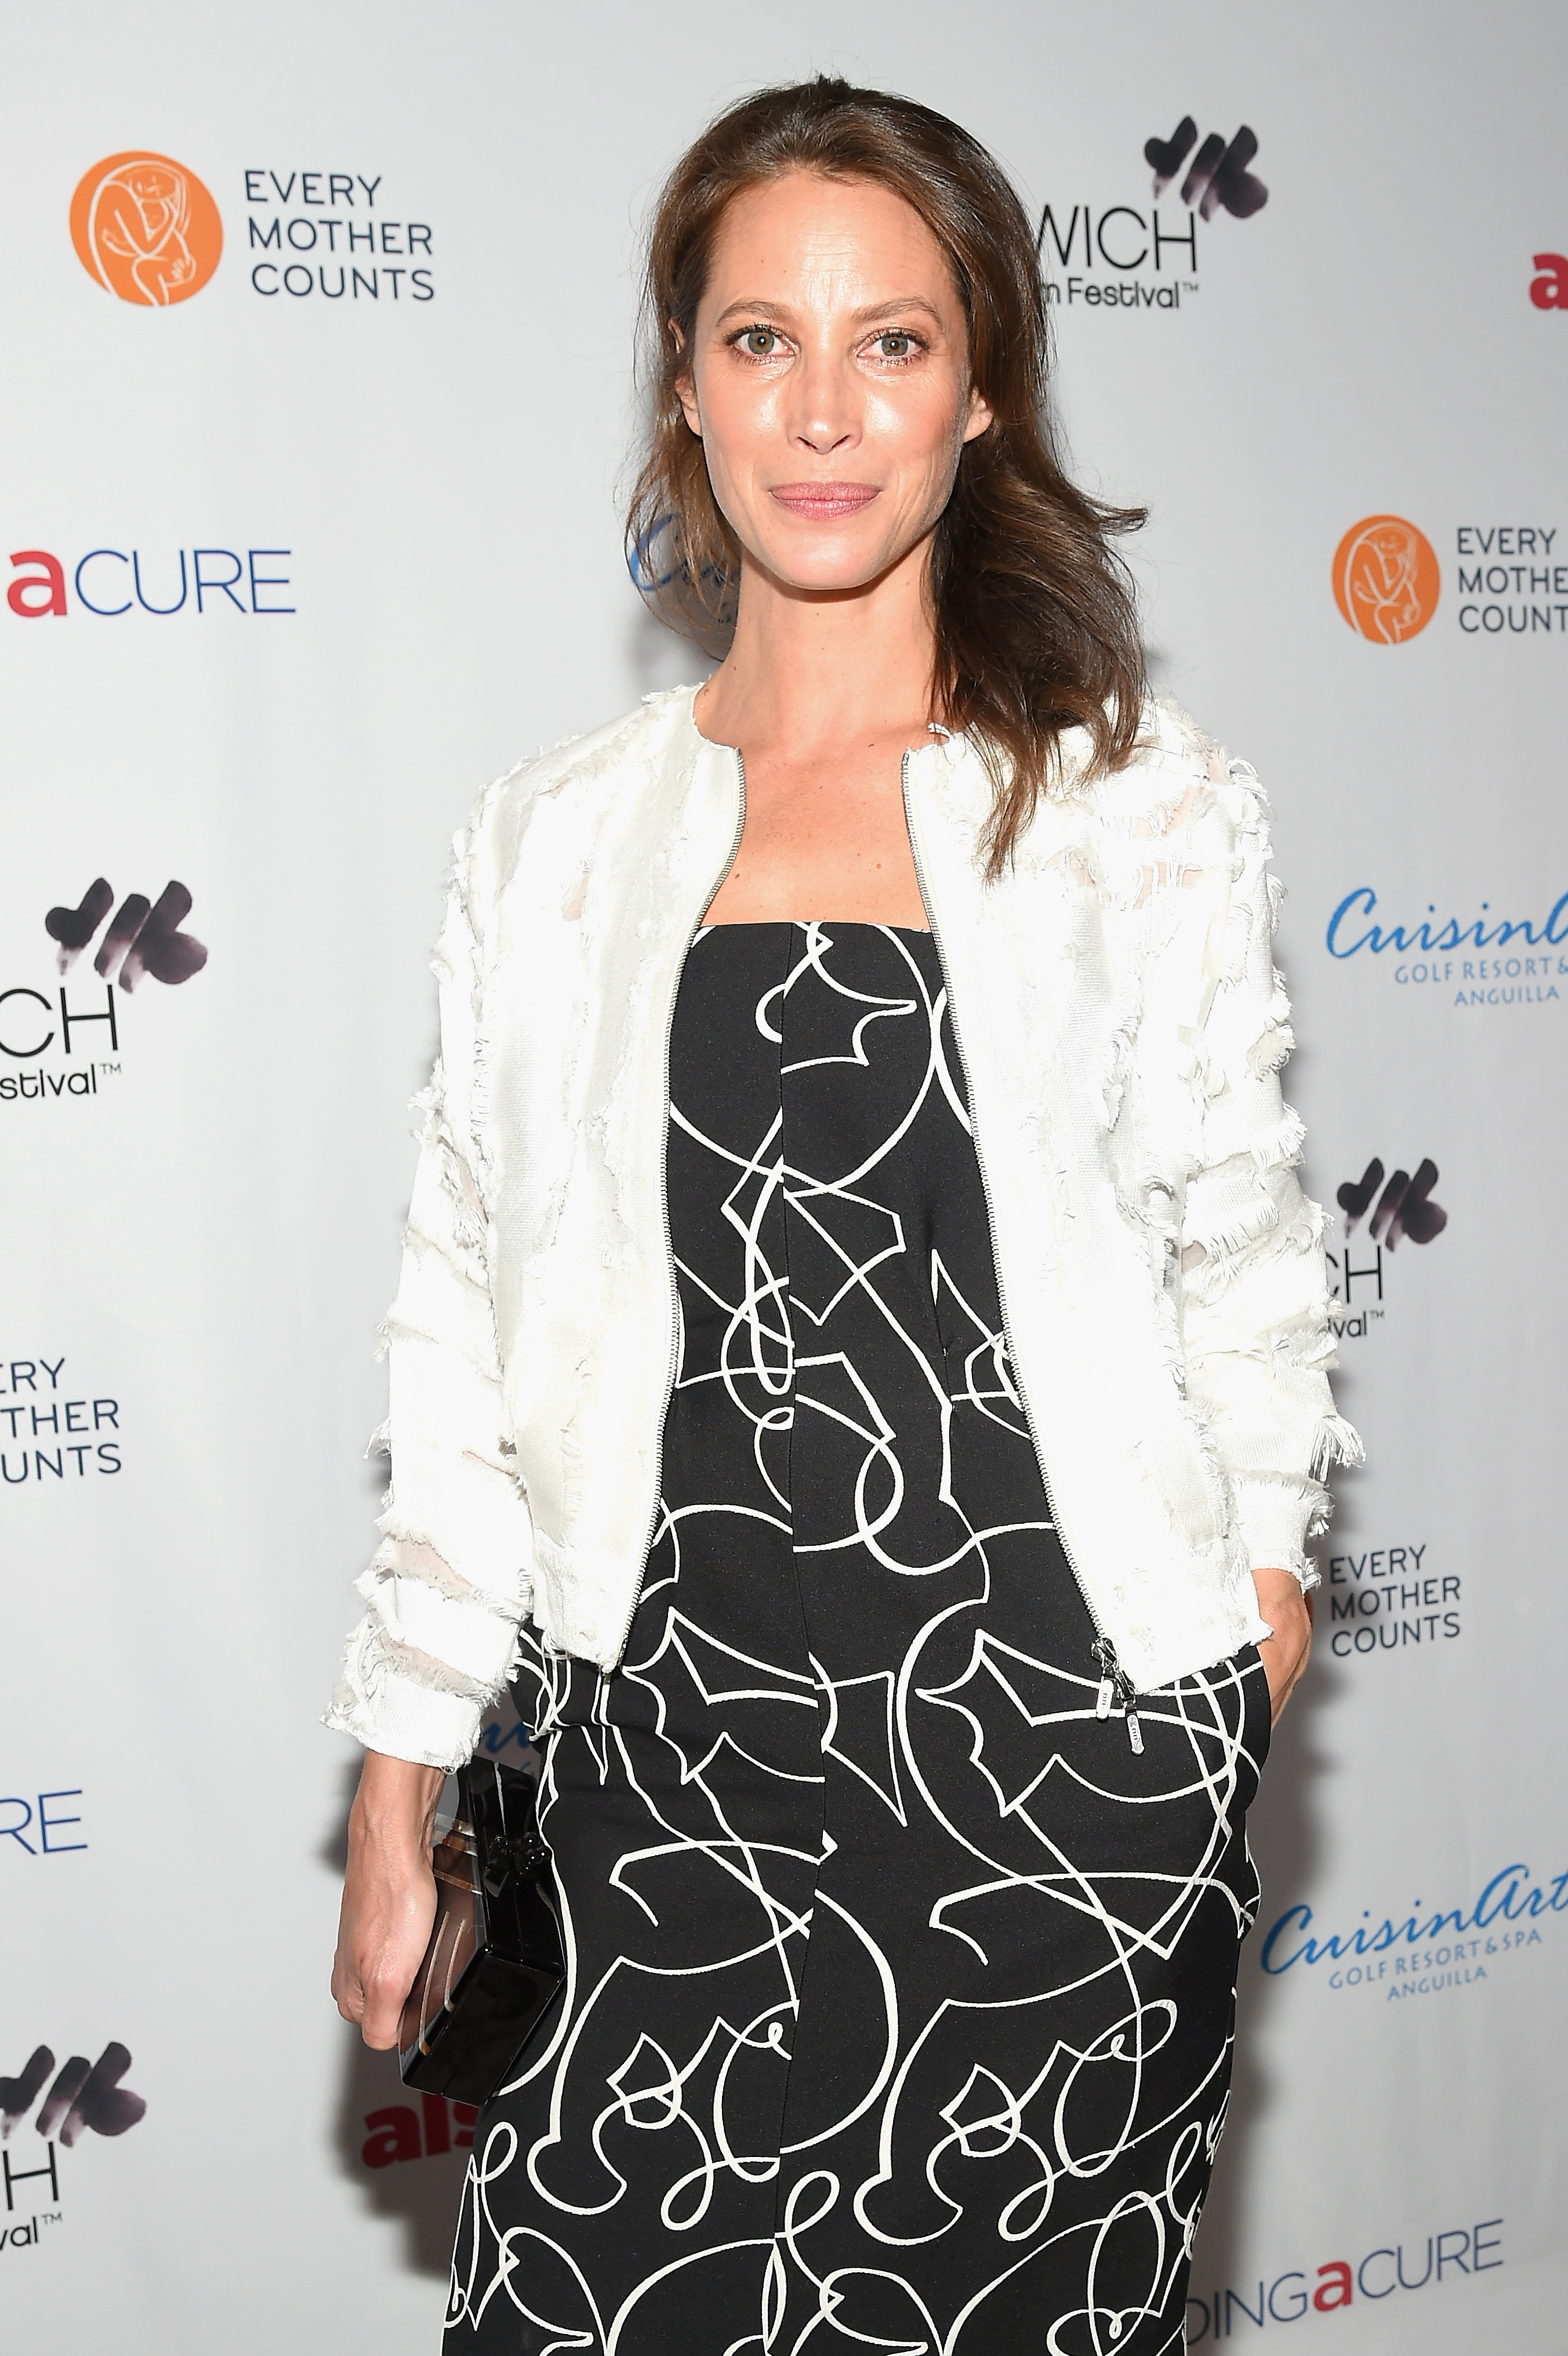 GREENWICH, CT - JUNE 01:  Christy Turlington attends the Changemaker Honoree Gala during the Greenwich International Film Festival on June 1, 2017 in Greenwich, Connecticut.  (Photo by Ben Gabbe/Getty Images for Greenwich International Film Festival)